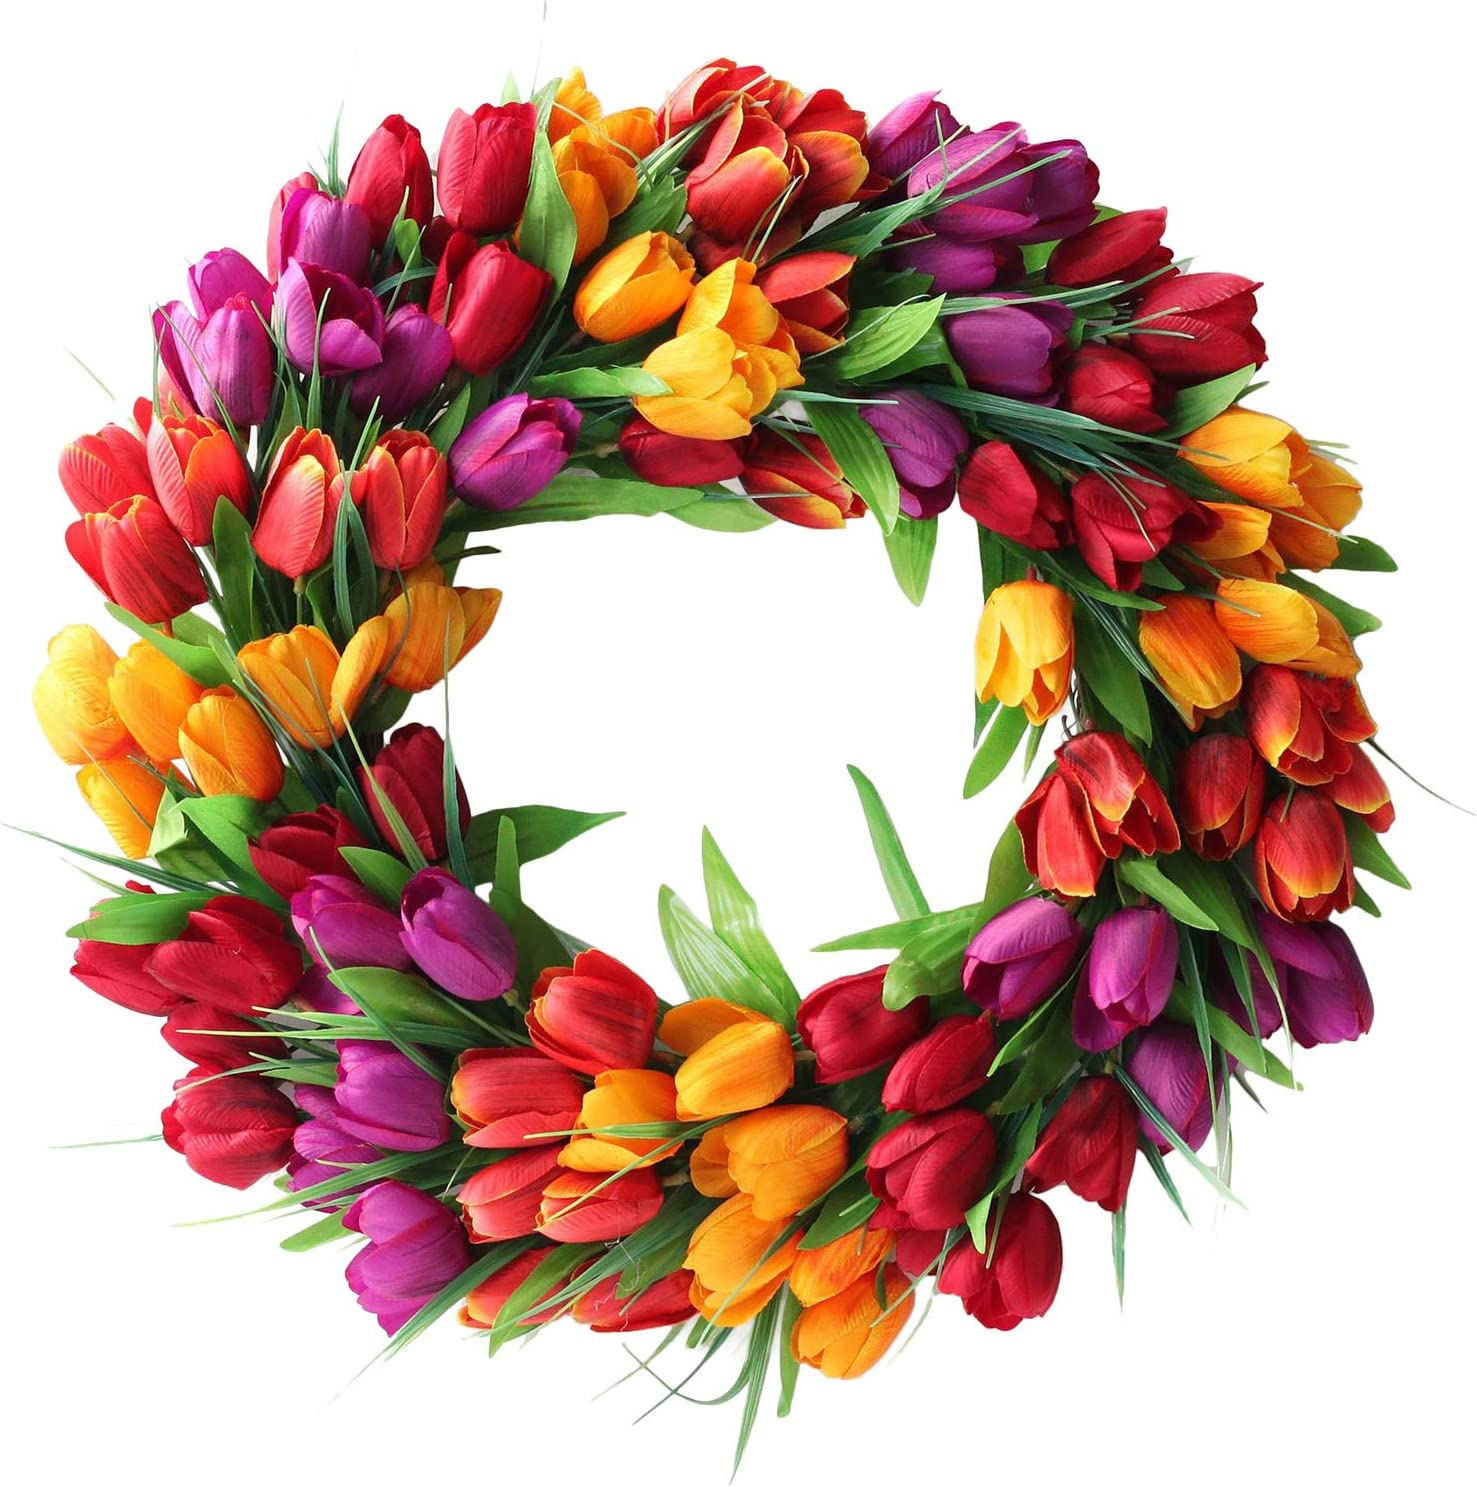 UNIE 20Inch Tulip Wreath Flower Wreaths for Front Door, Spring Silk Wreath with Green Leaves for Window Wall Wedding Valentines Day Decor